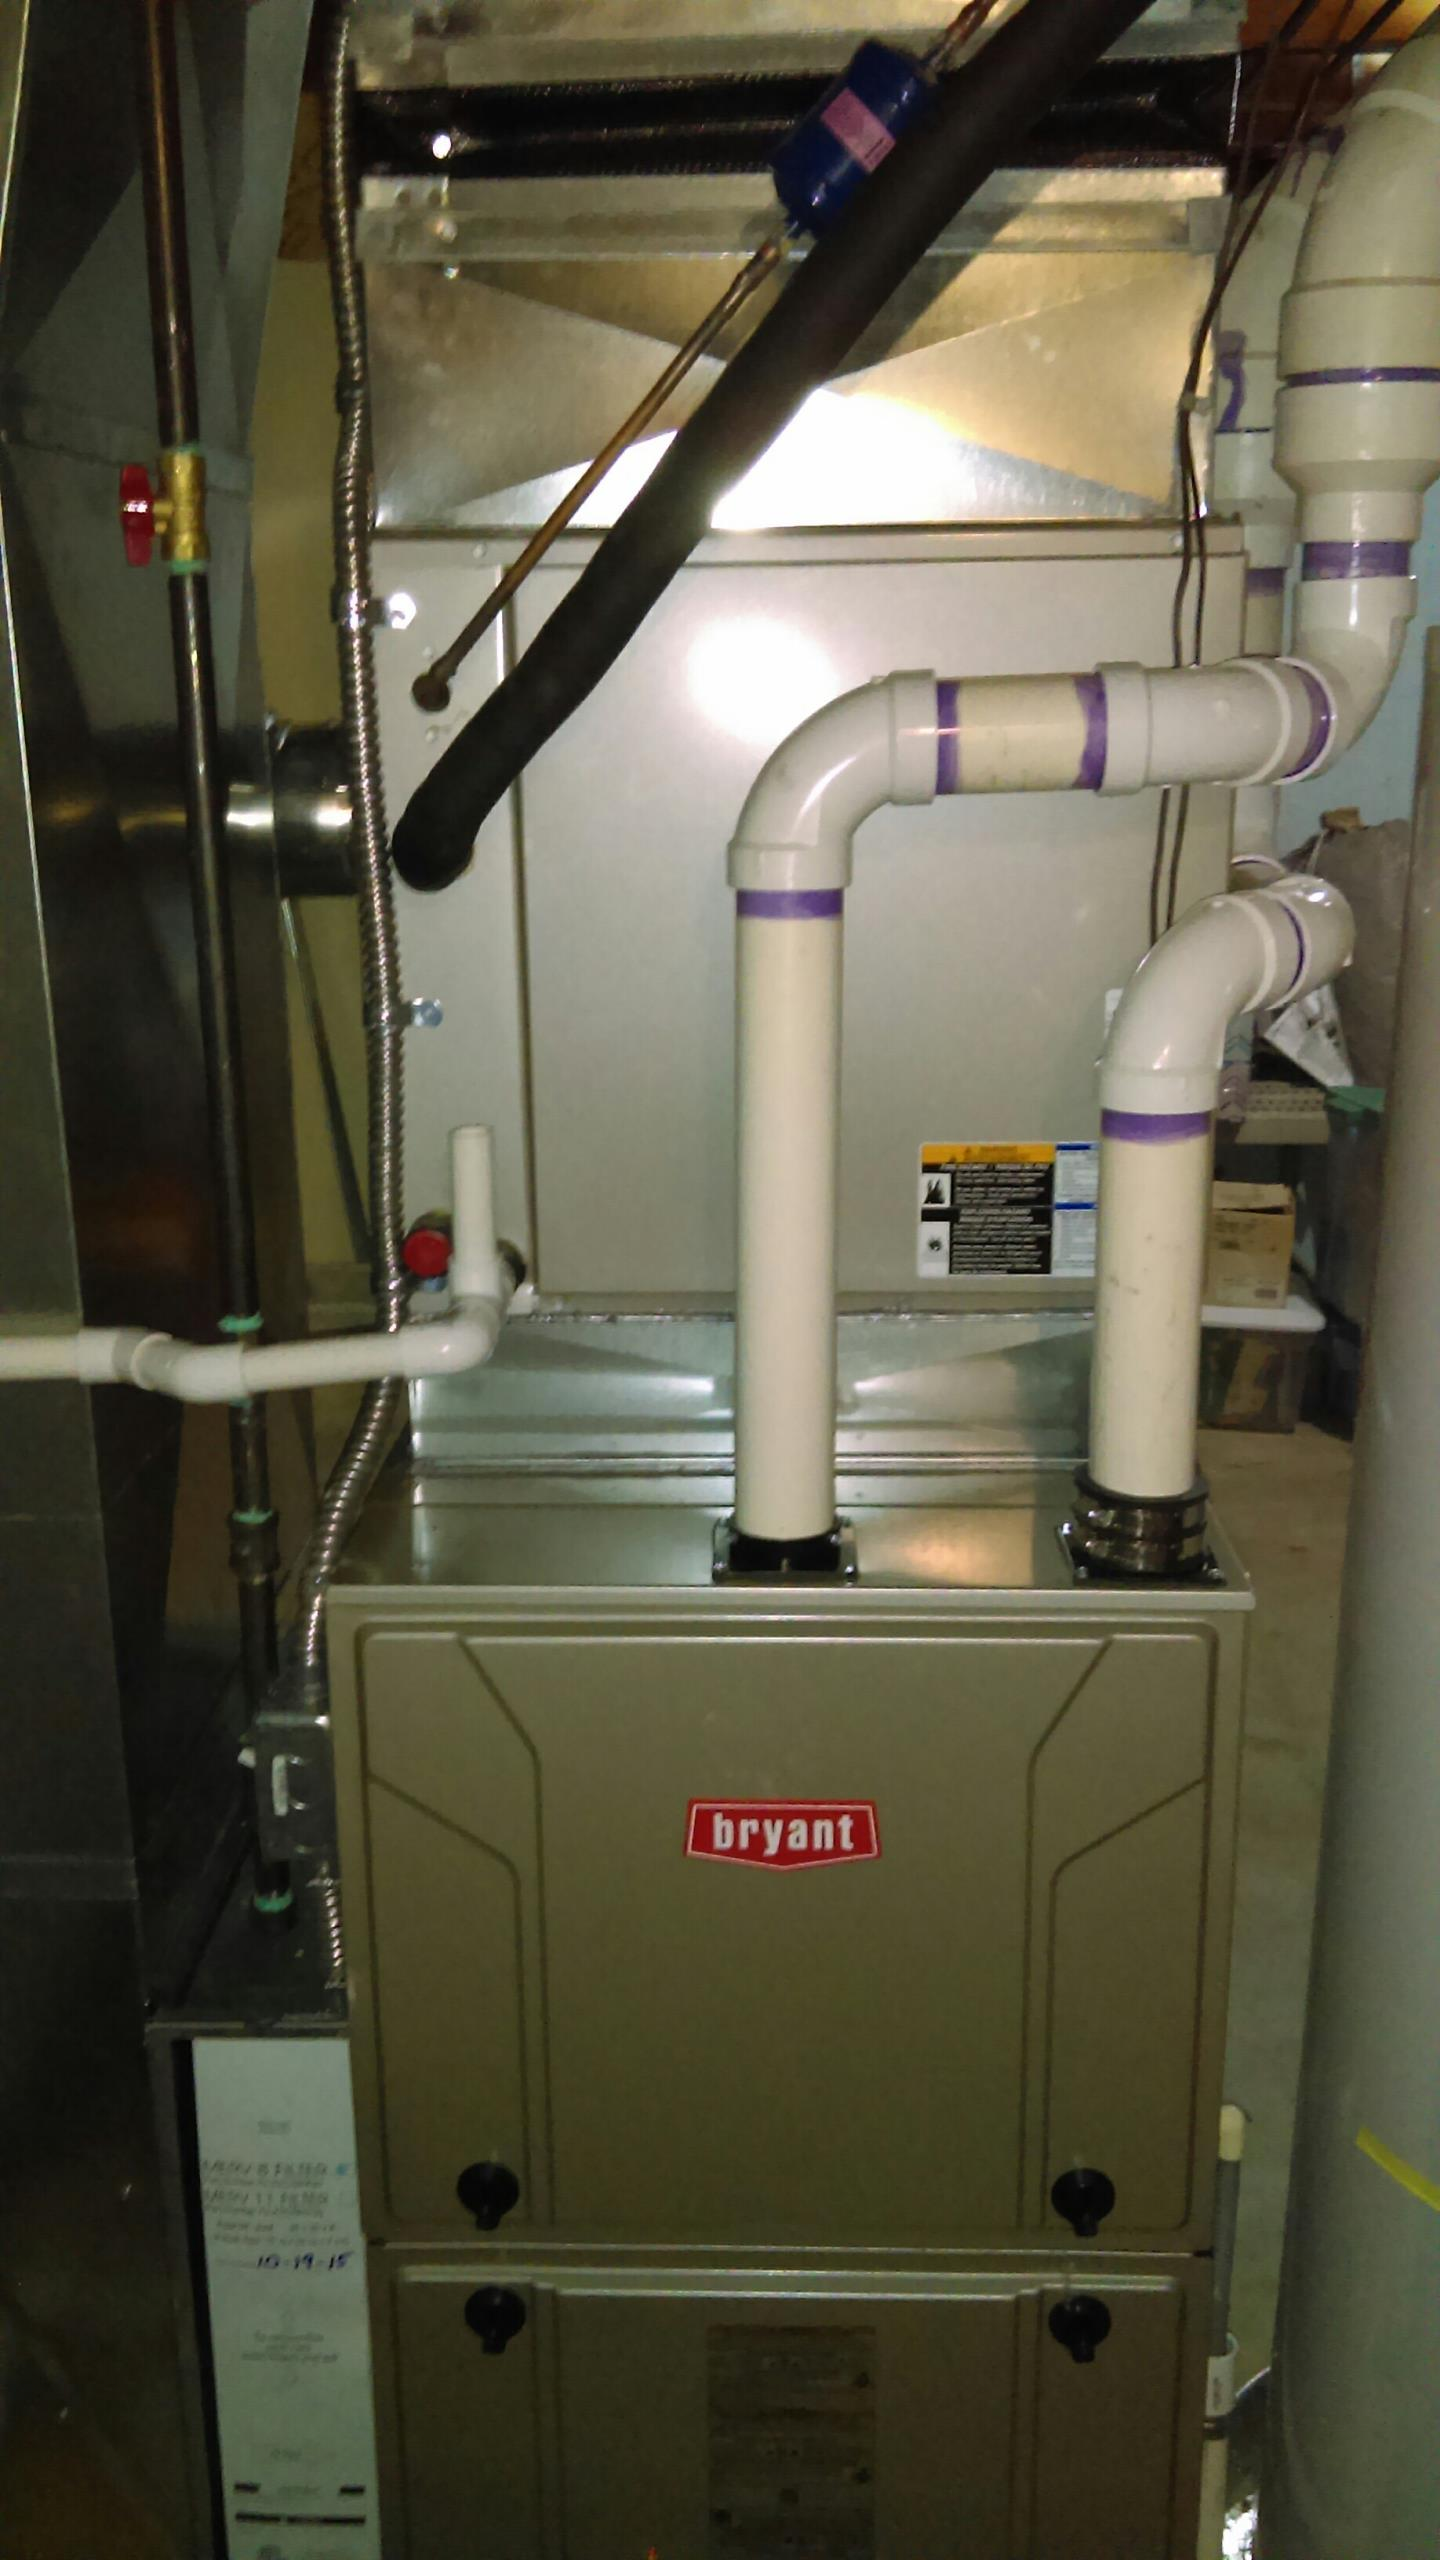 Lyon charter Township, MI - Install a Bryant 96% efficient furnace